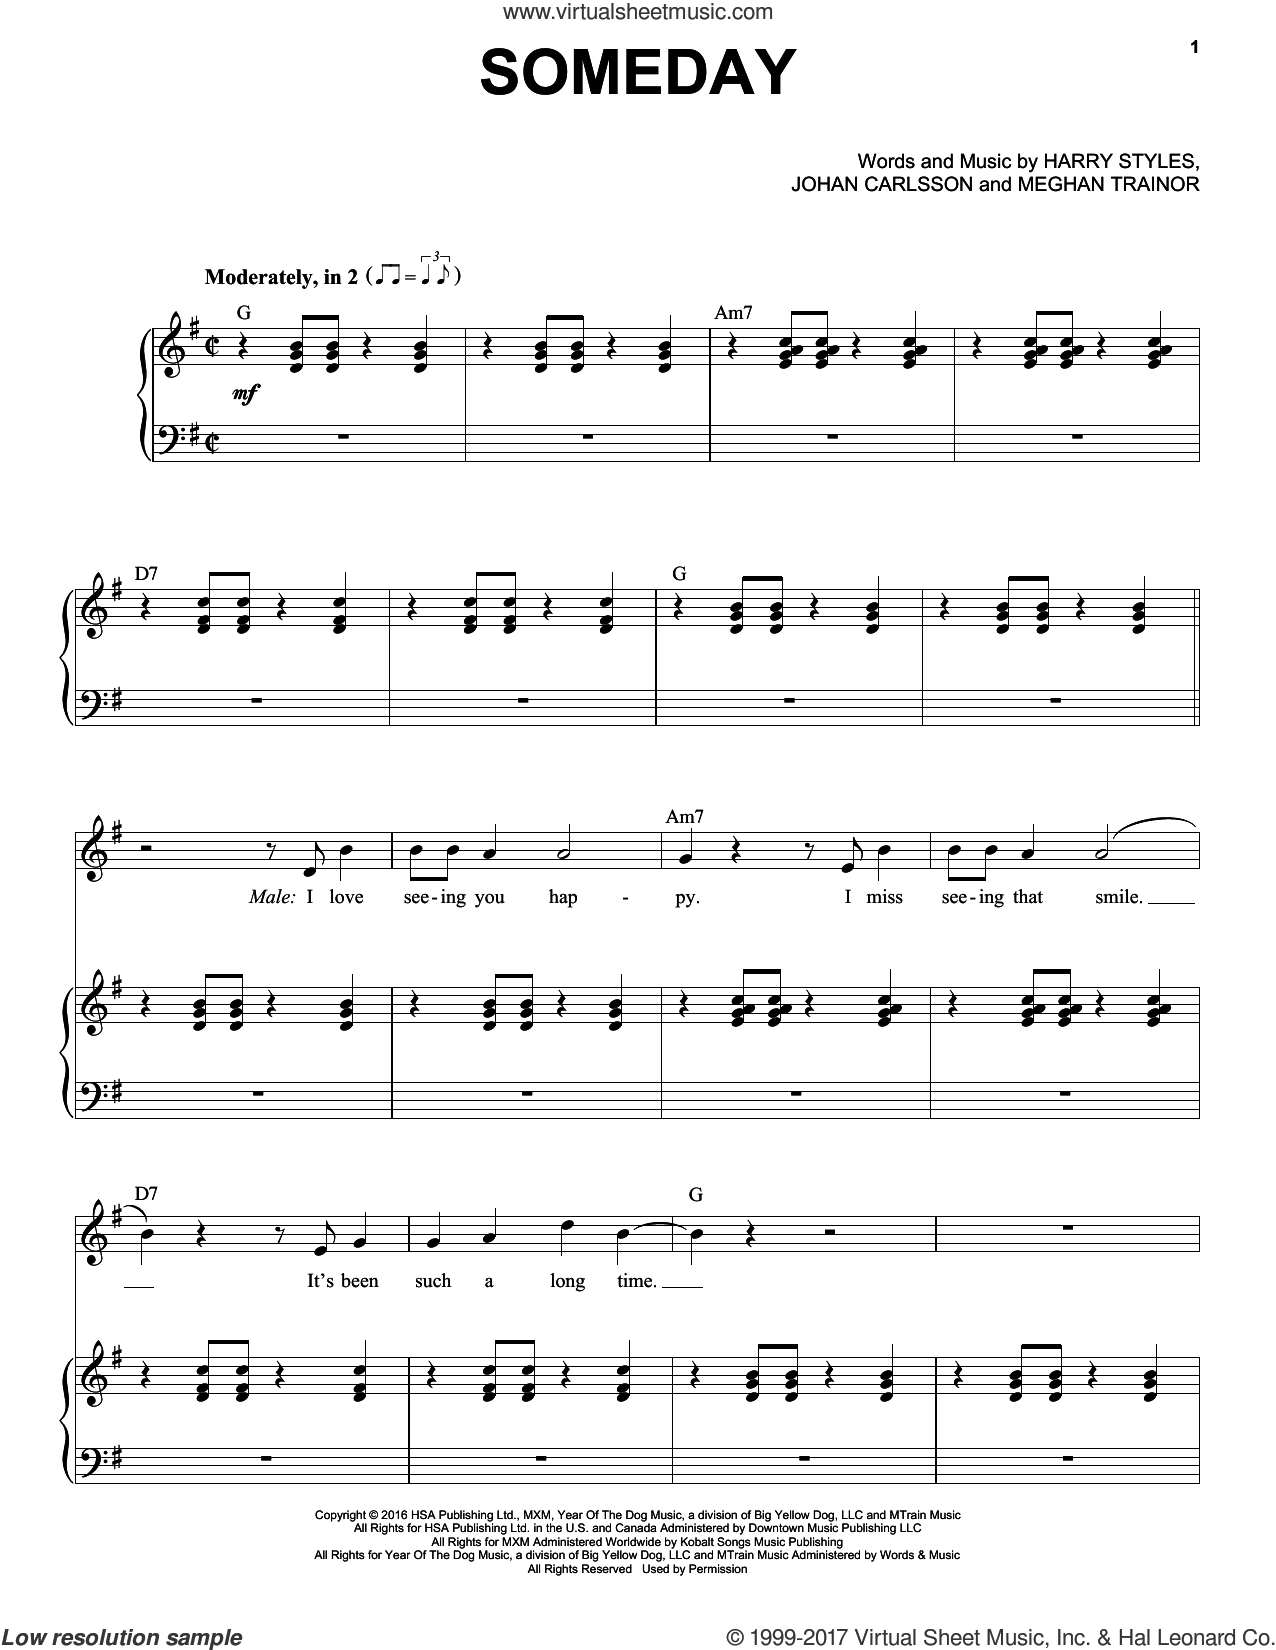 Someday sheet music for voice and piano by Michael Buble featuring Meghan Trainor, Michael Buble, Harry Styles, Johan Carlsson and Meghan Trainor, intermediate